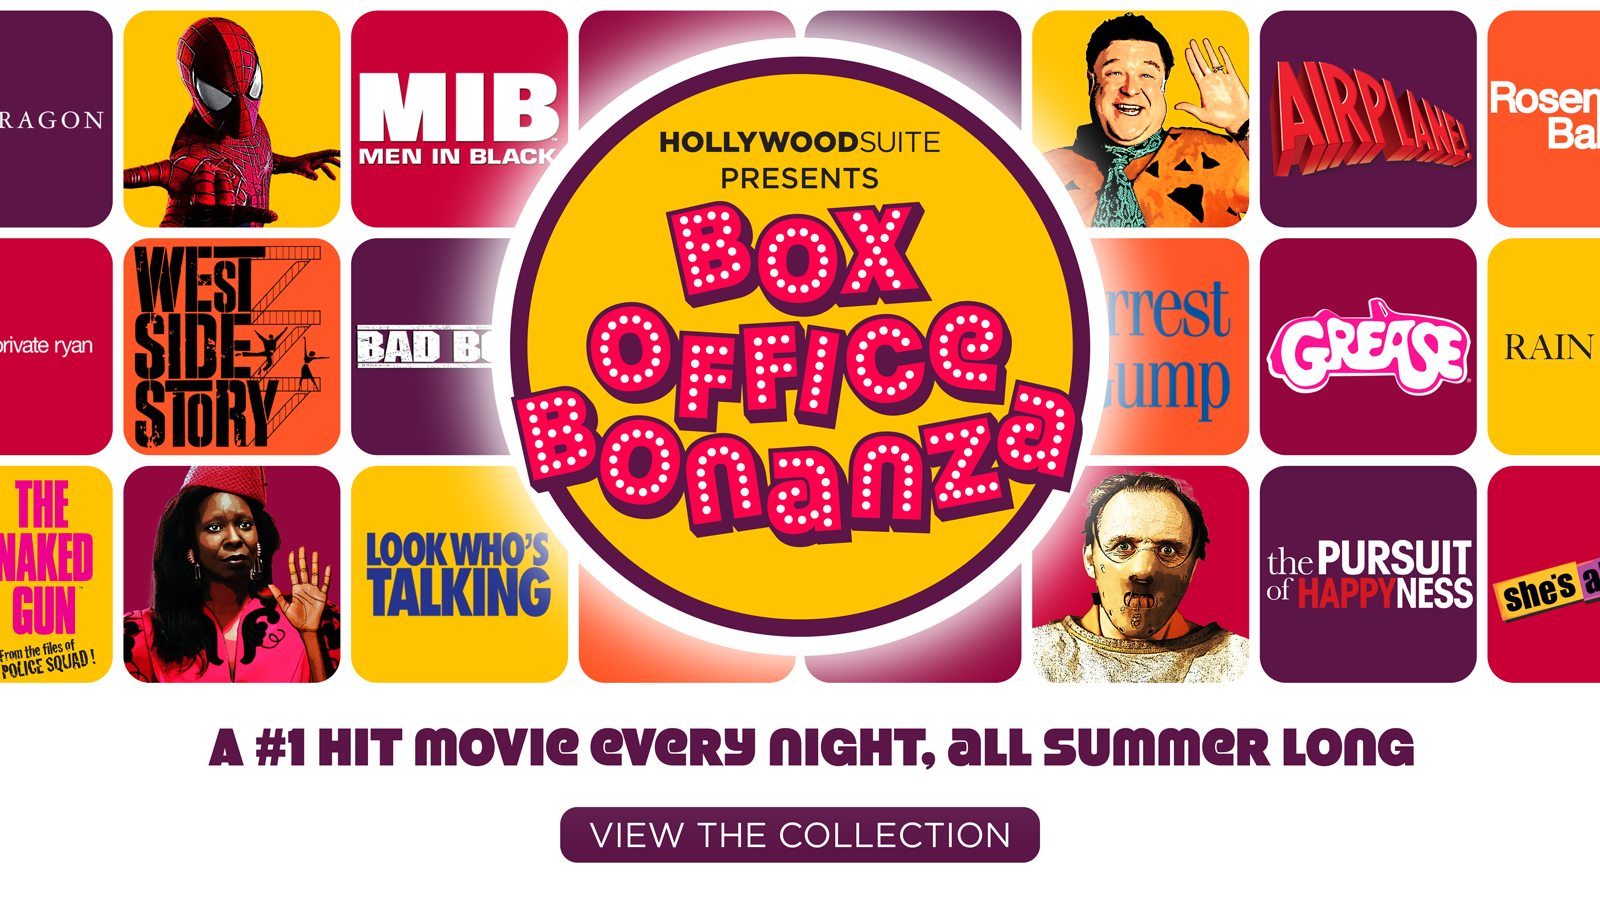 Box Office Bonanza – A #1 hit movie every night, all summer long – LEARN MORE